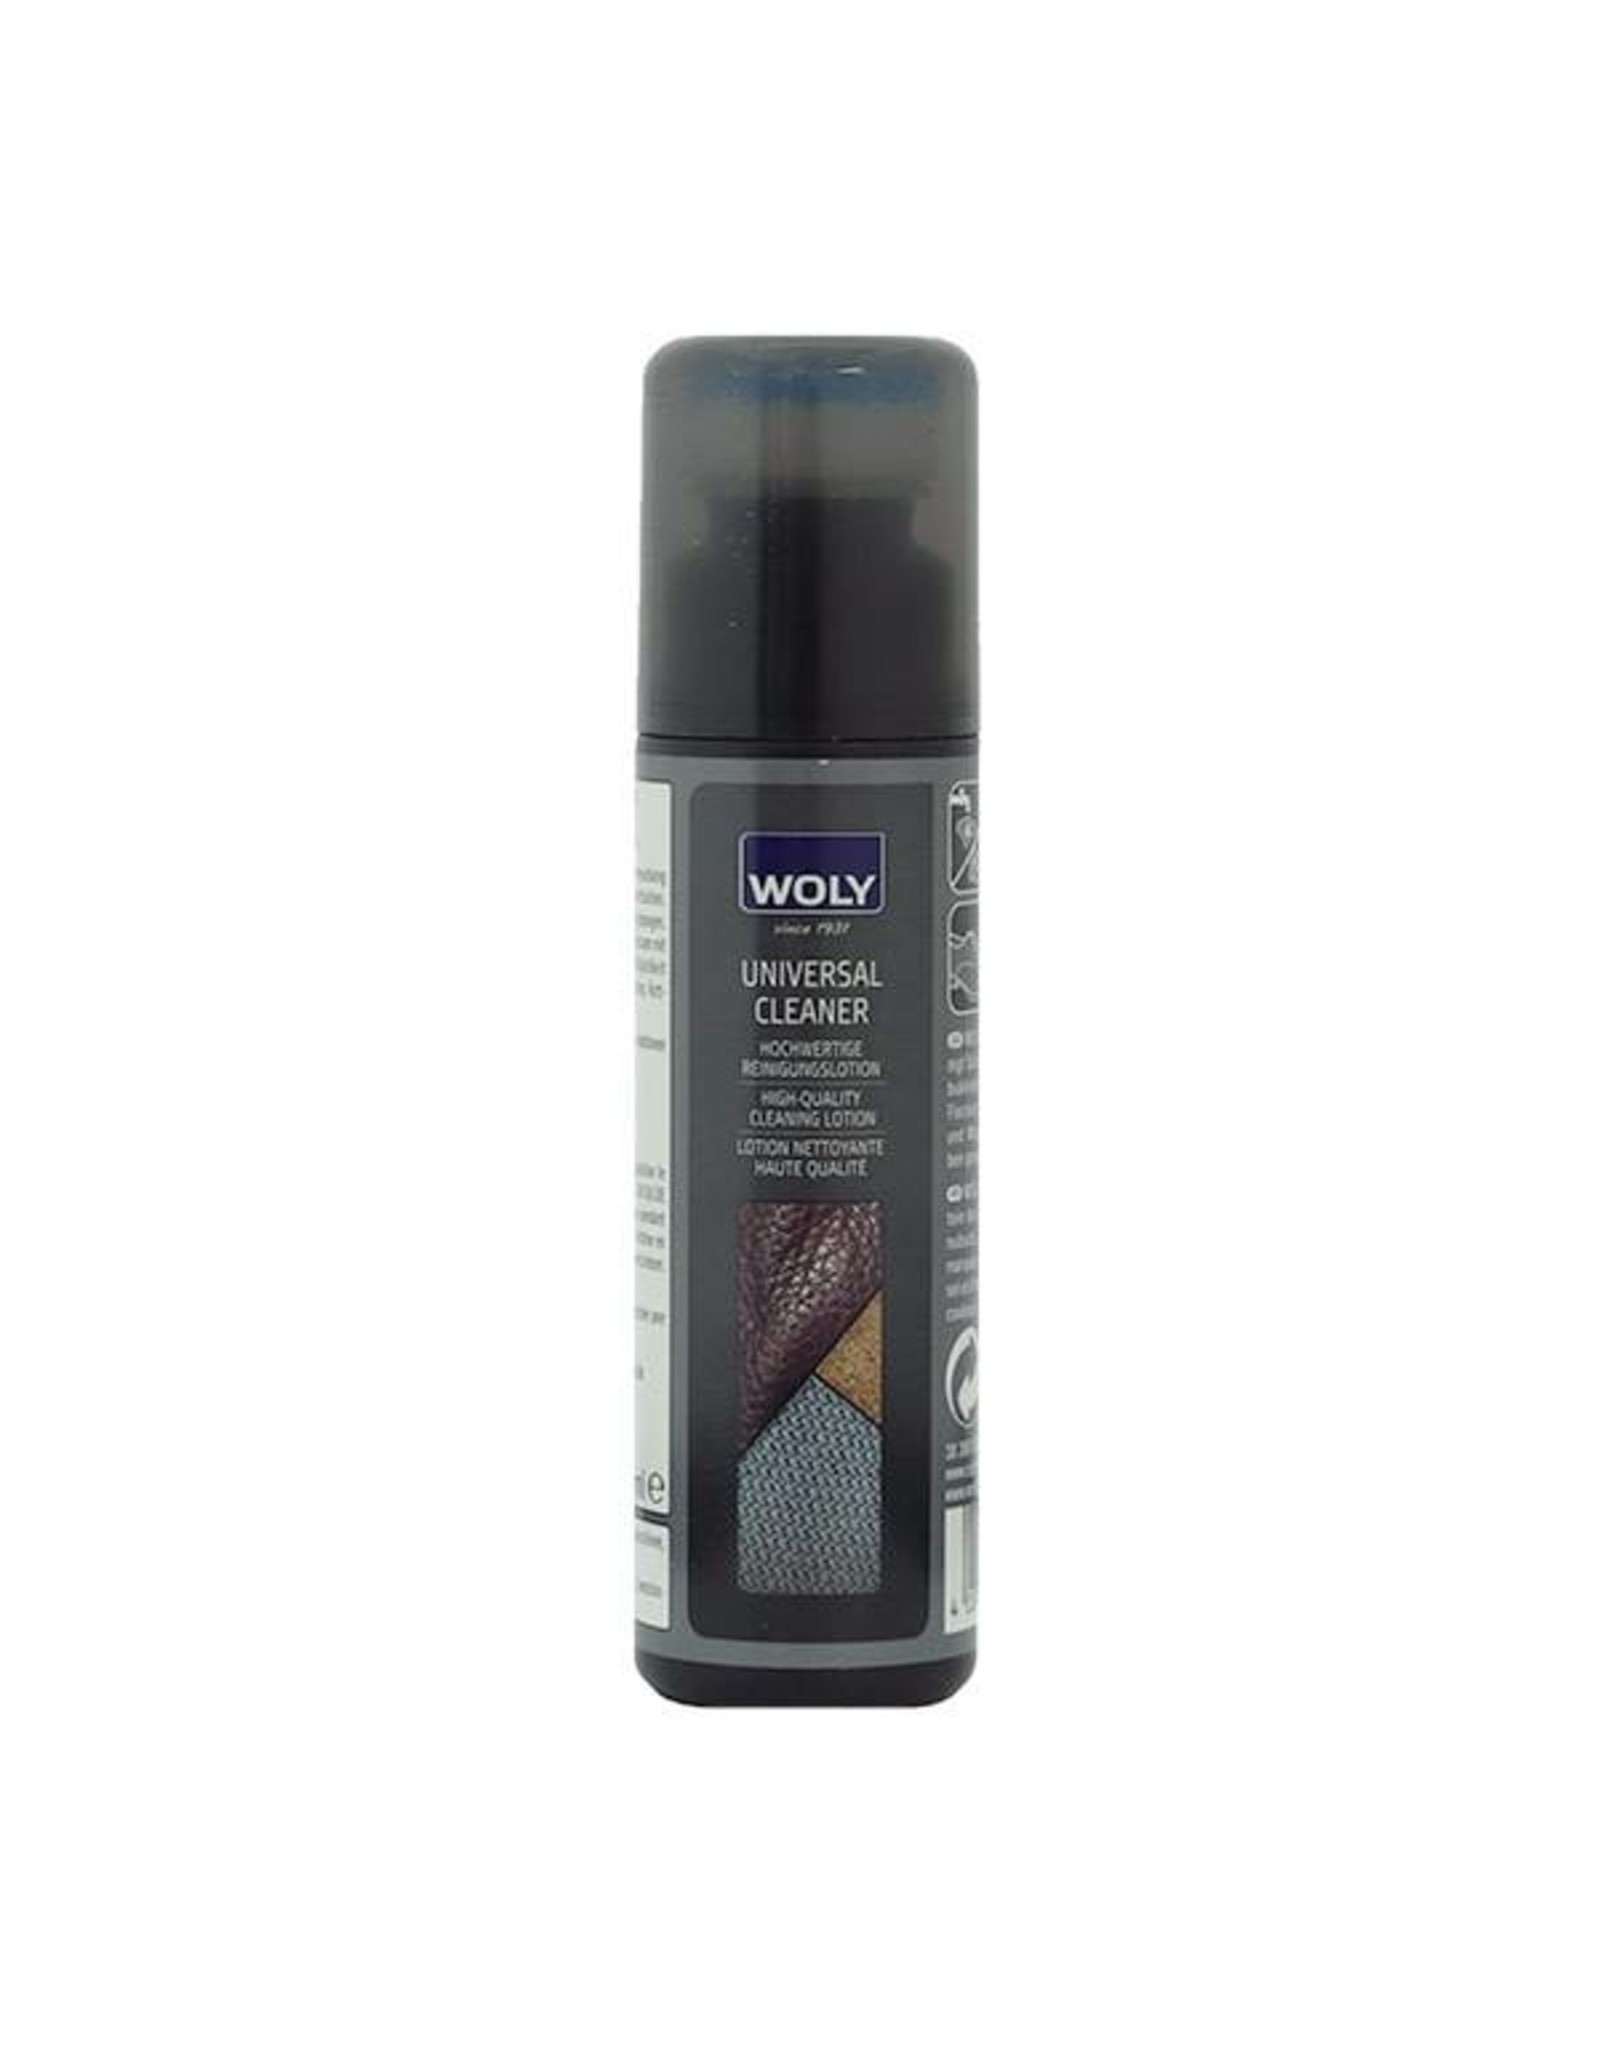 Woly Woly universal cleaner